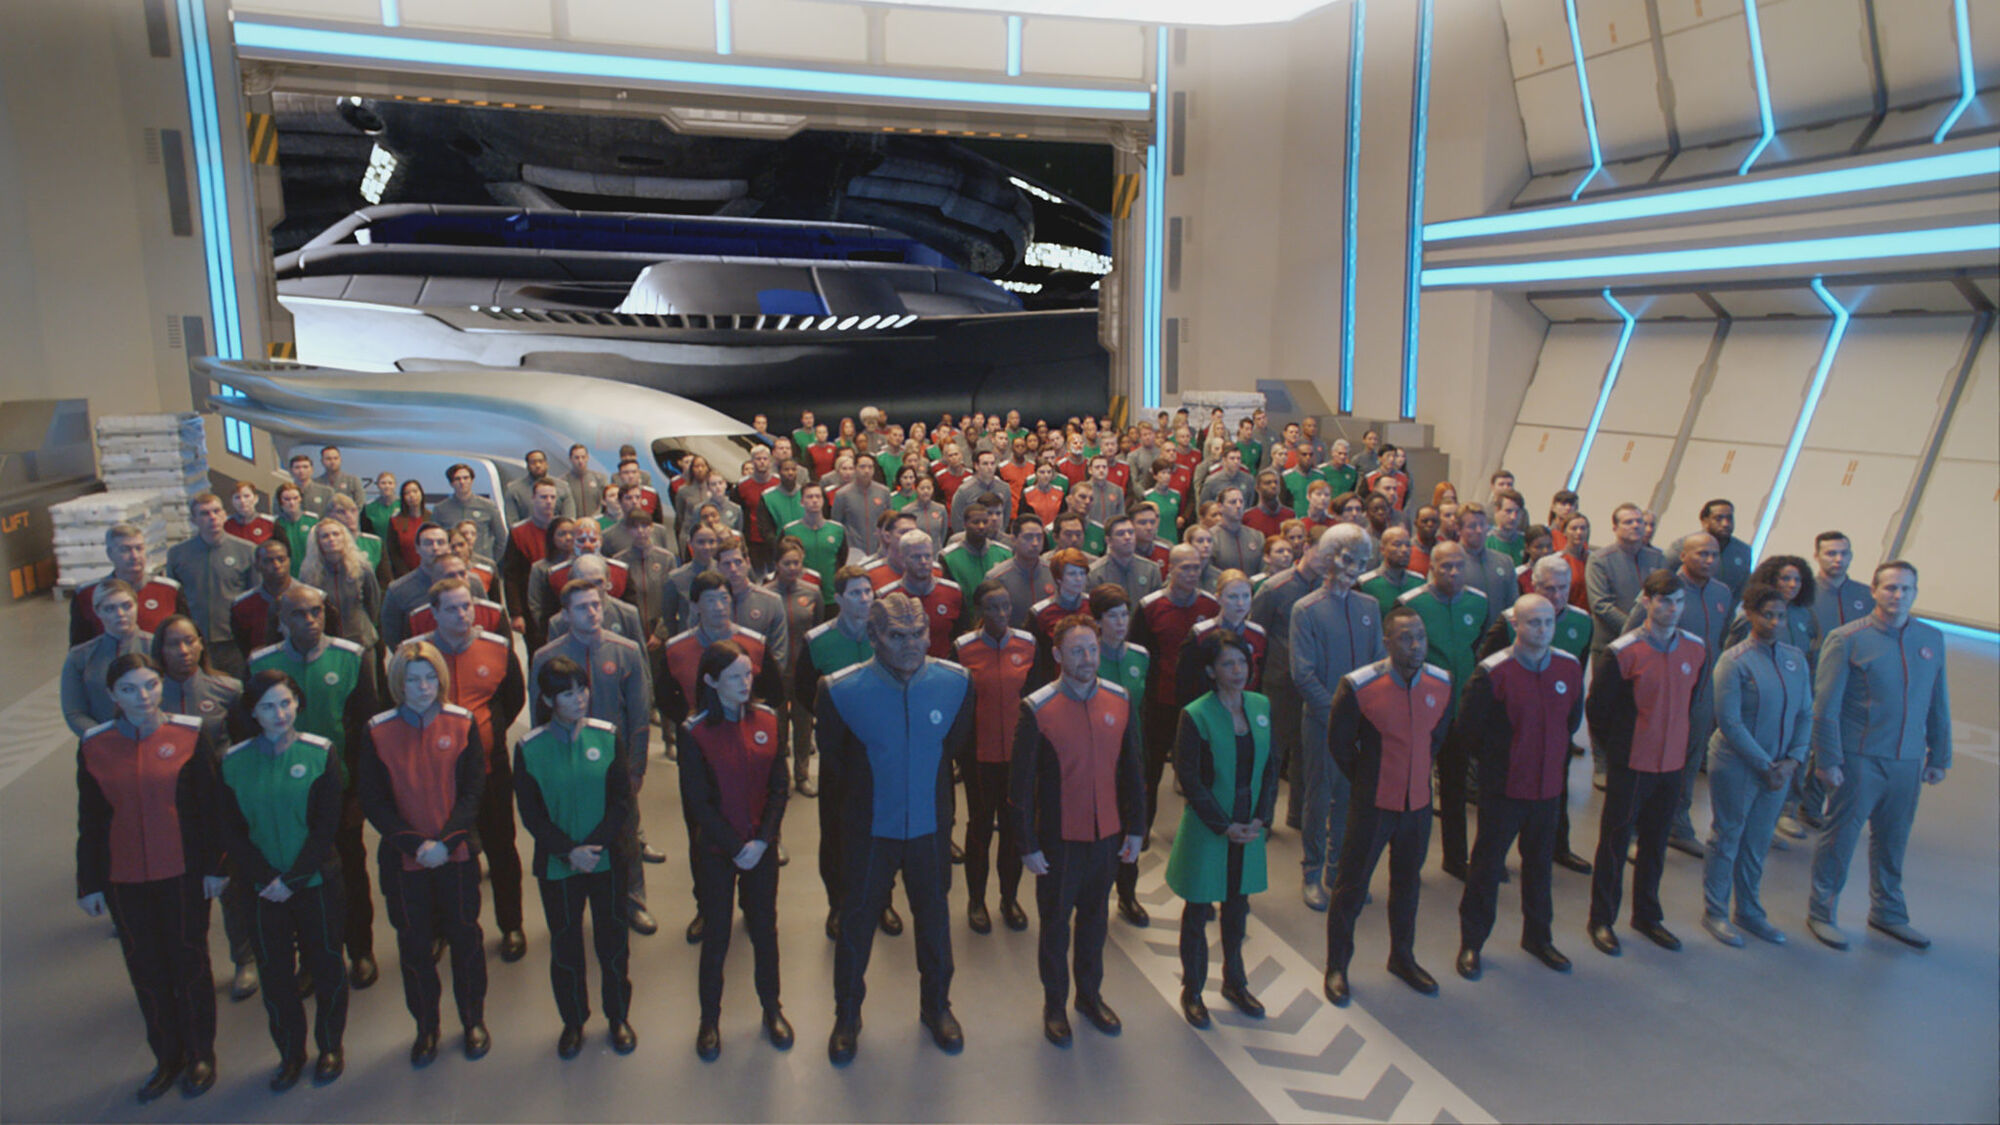 Ranks and Positions | The Orville Wiki | FANDOM powered by Wikia